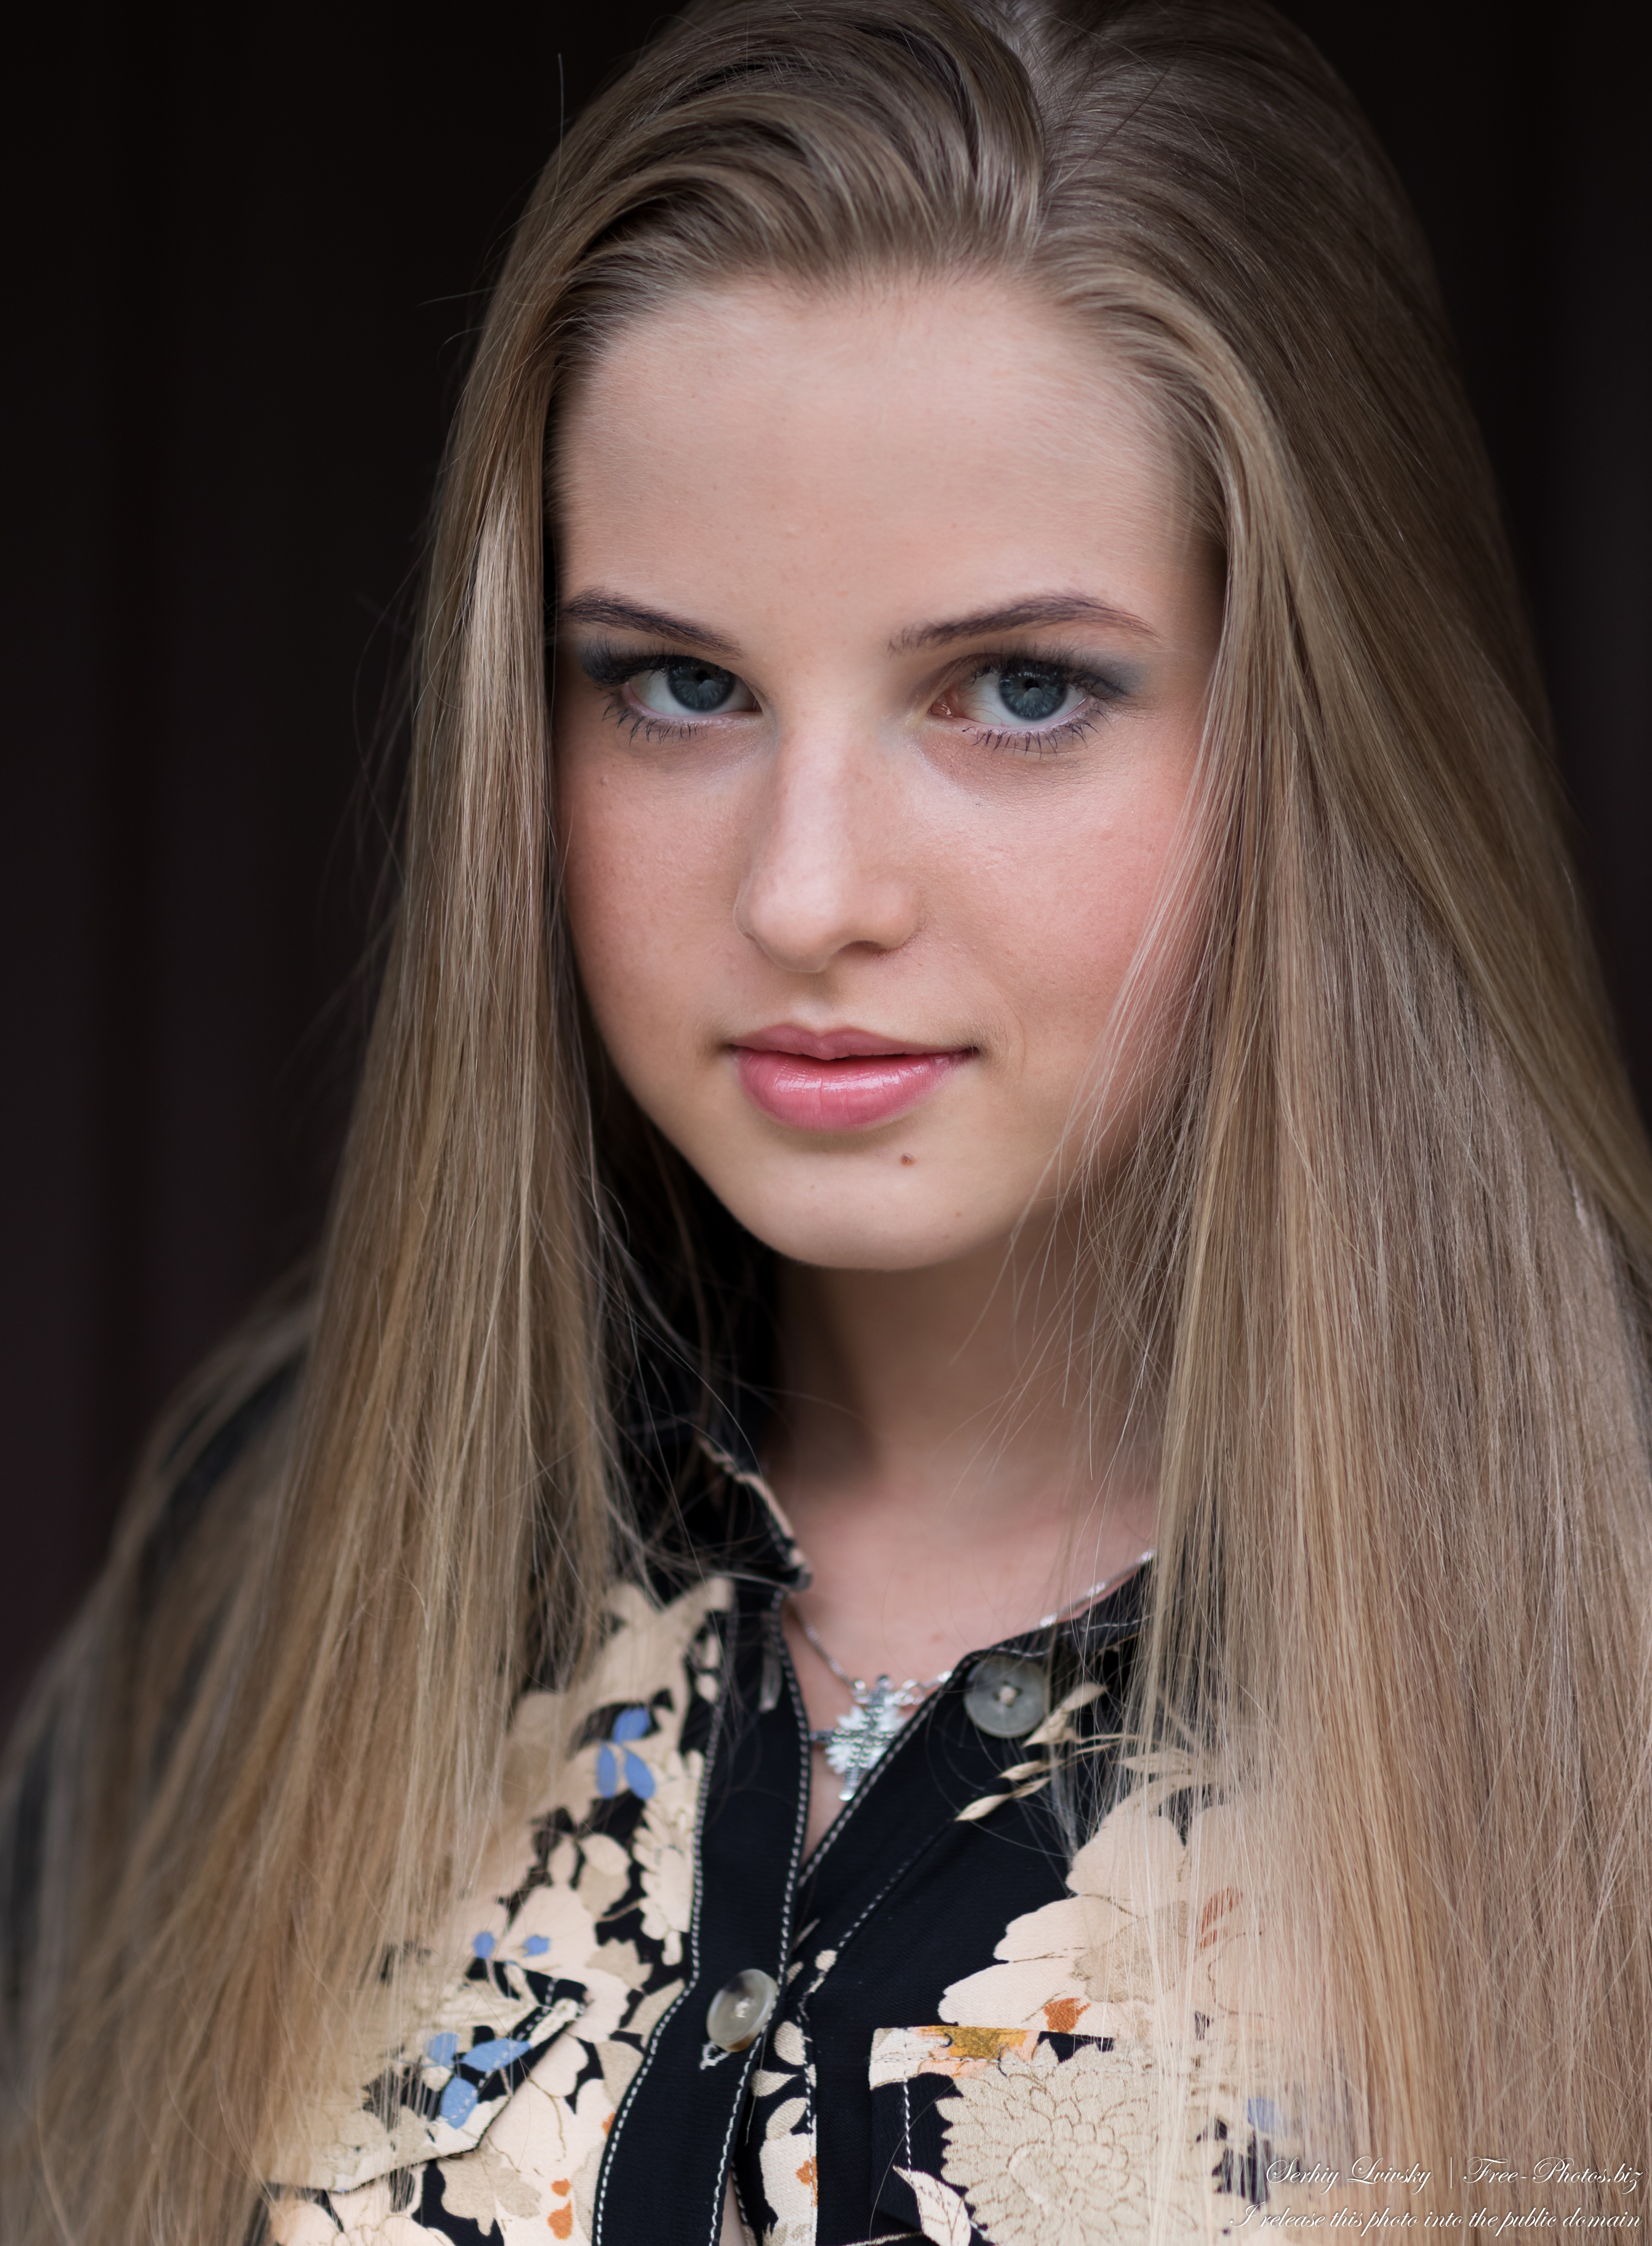 Diana - an 18-year-old natural blonde girl photographed in August 2020 by Serhiy Lvivsky, picture 46